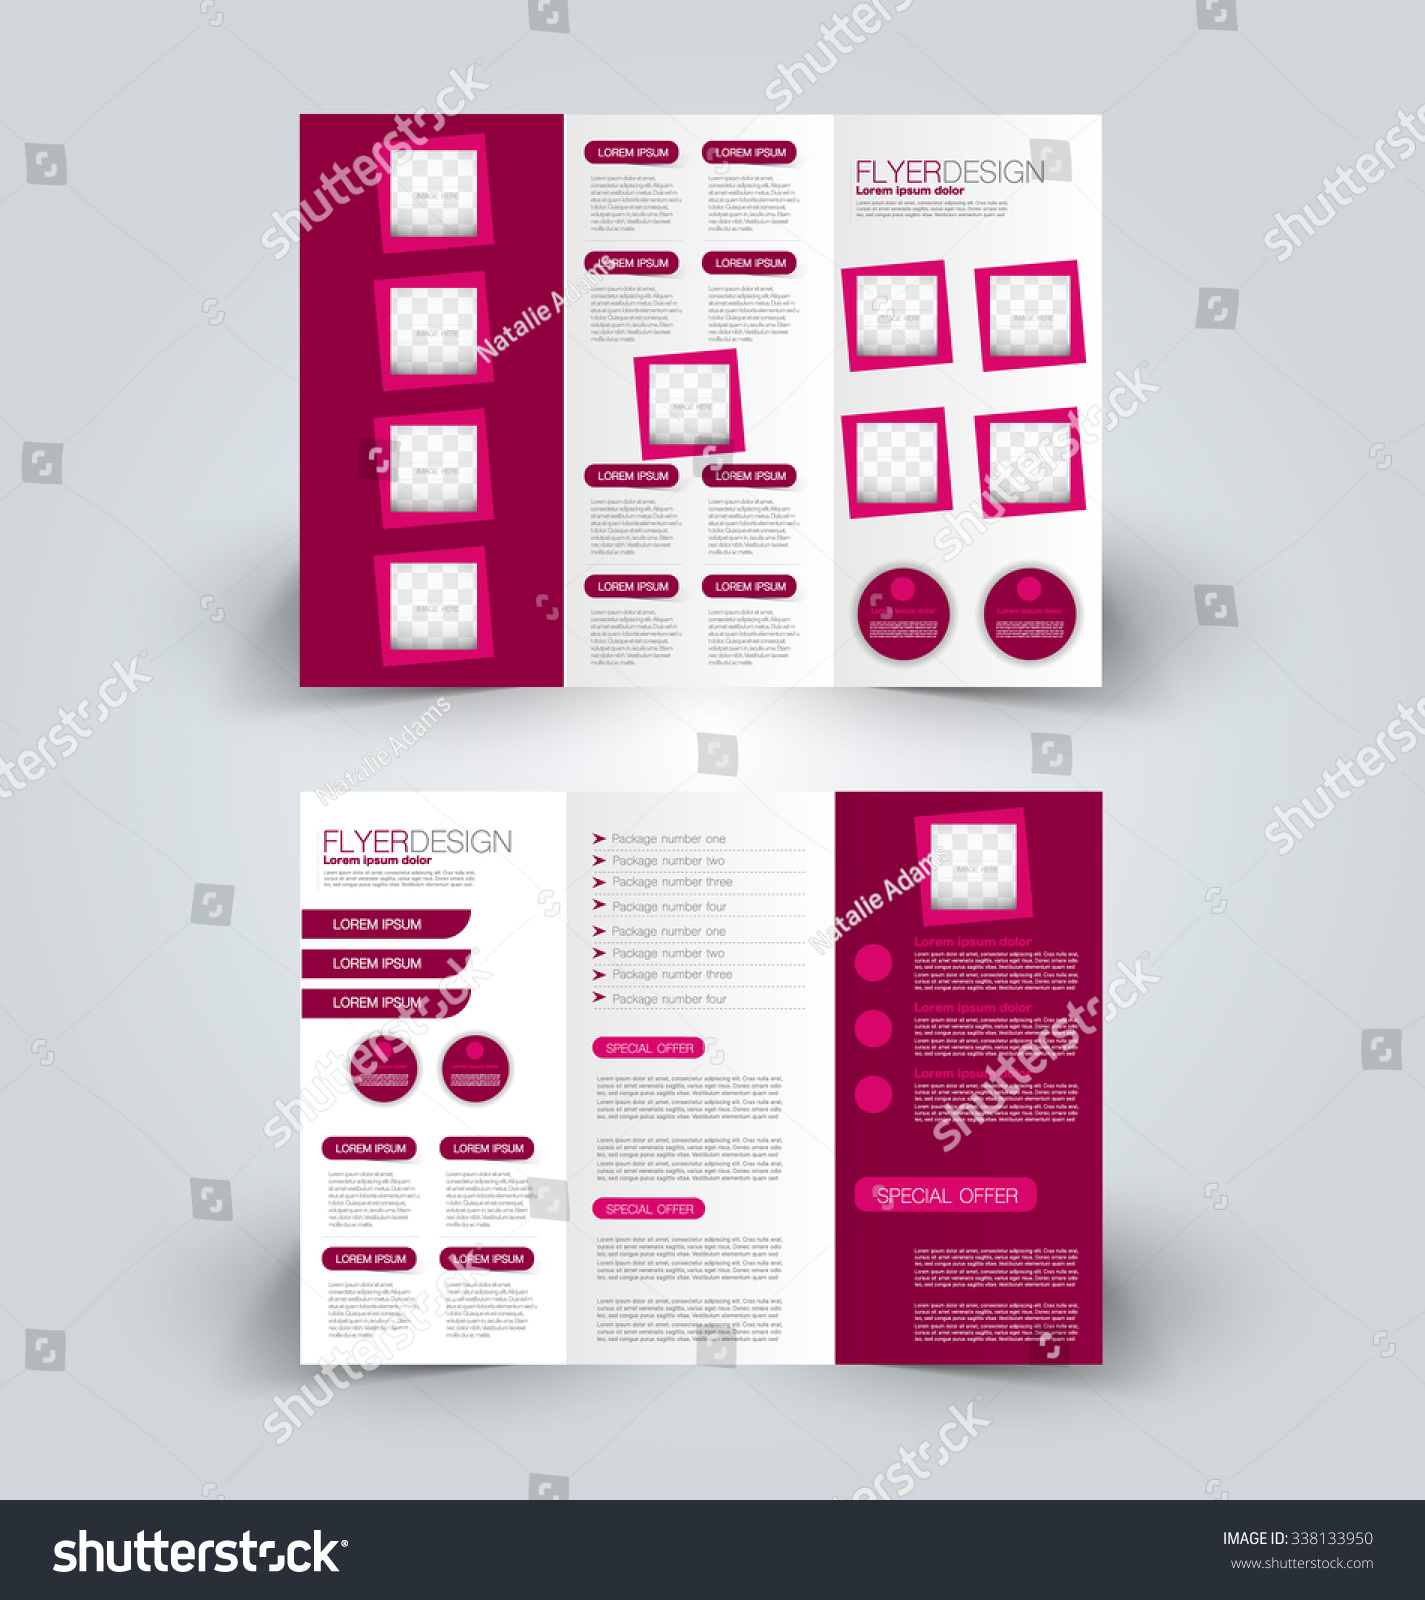 brochure design template abstract background business stock vector